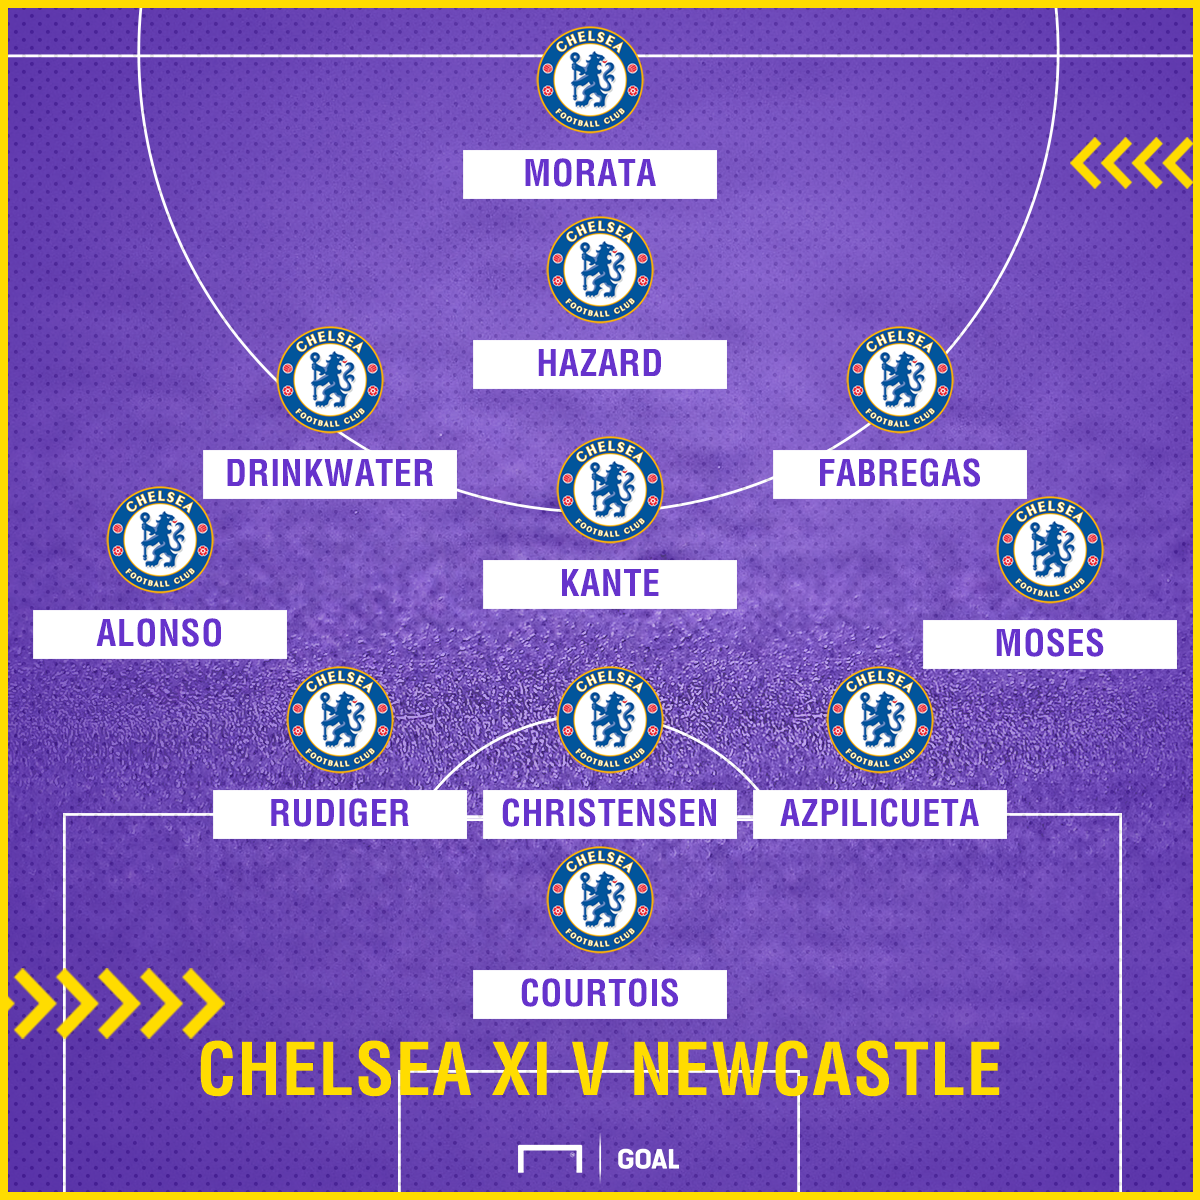 Chelsea XI vs Newcastle 02/12/17